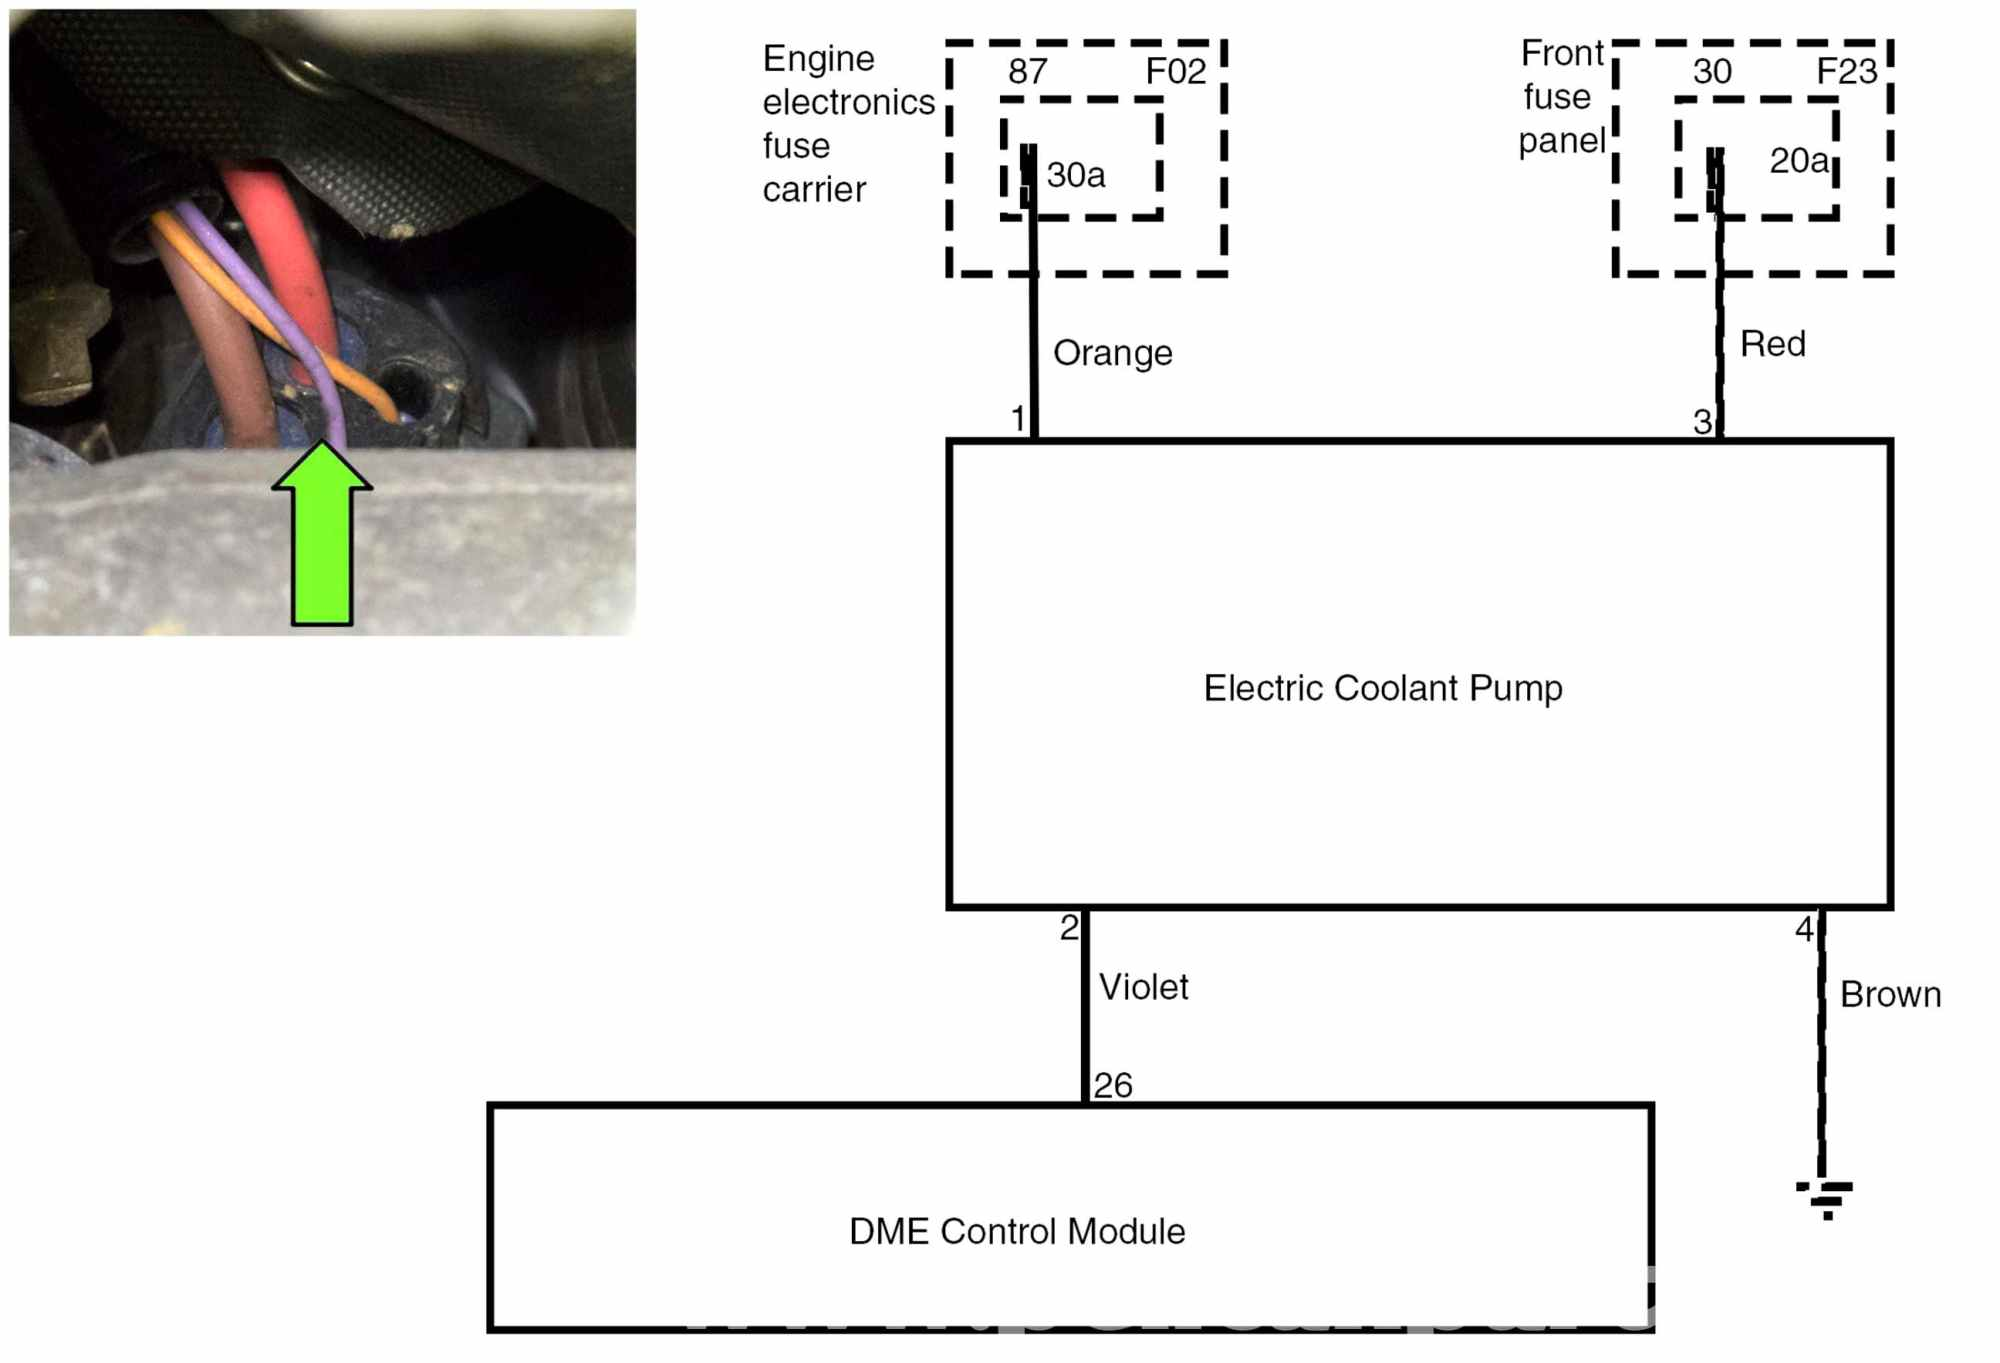 hight resolution of bmw 328i wiring harness diagram simple wiring diagram rh 53 mara cujas de 2010 bmw 528i 2010 bmw 328i spoiler